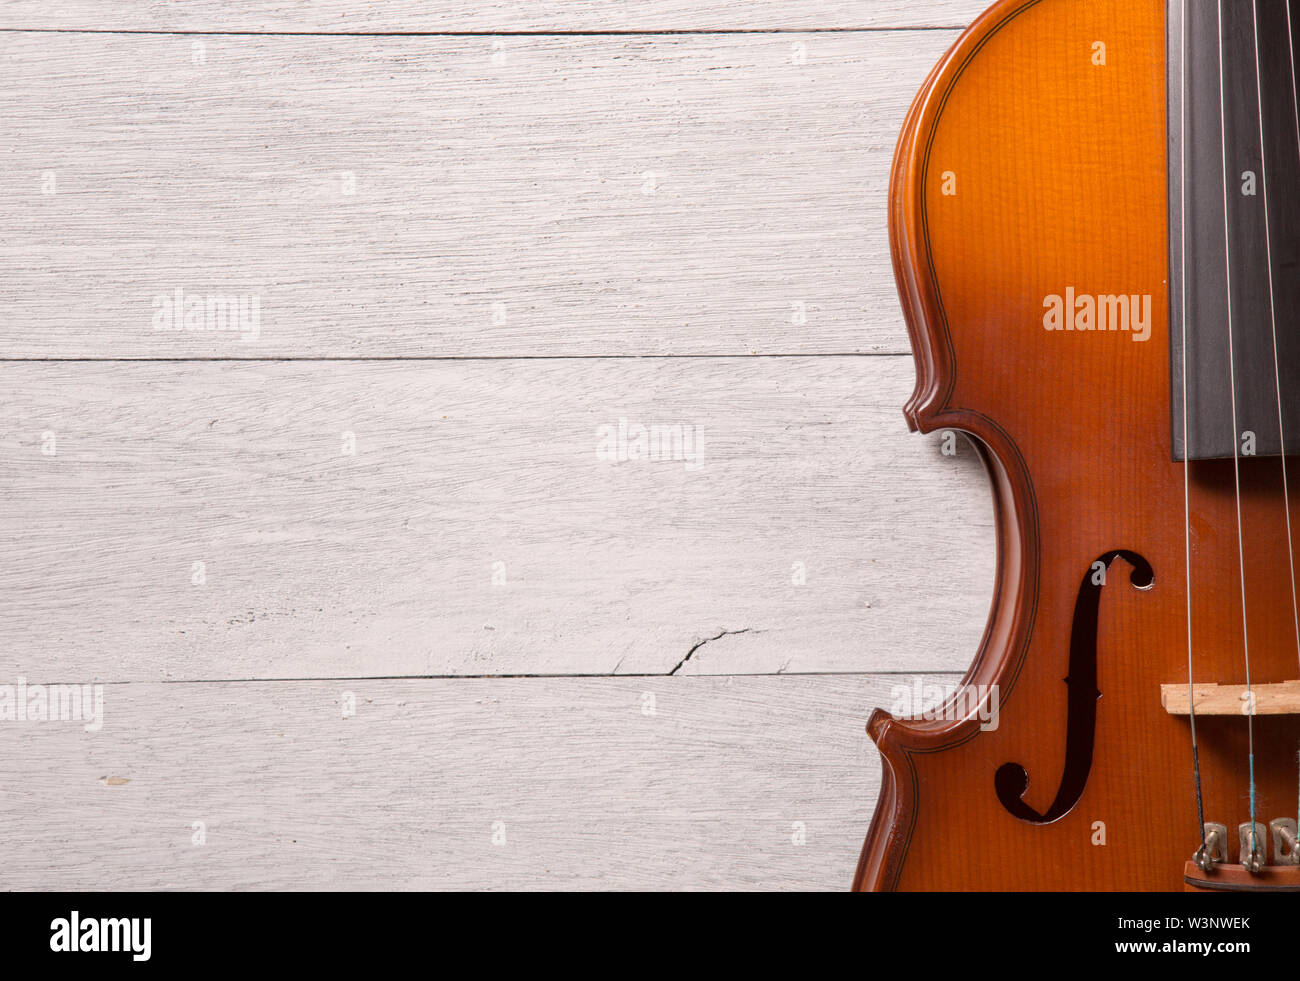 still life of vintage violin on white wooden background - Stock Image